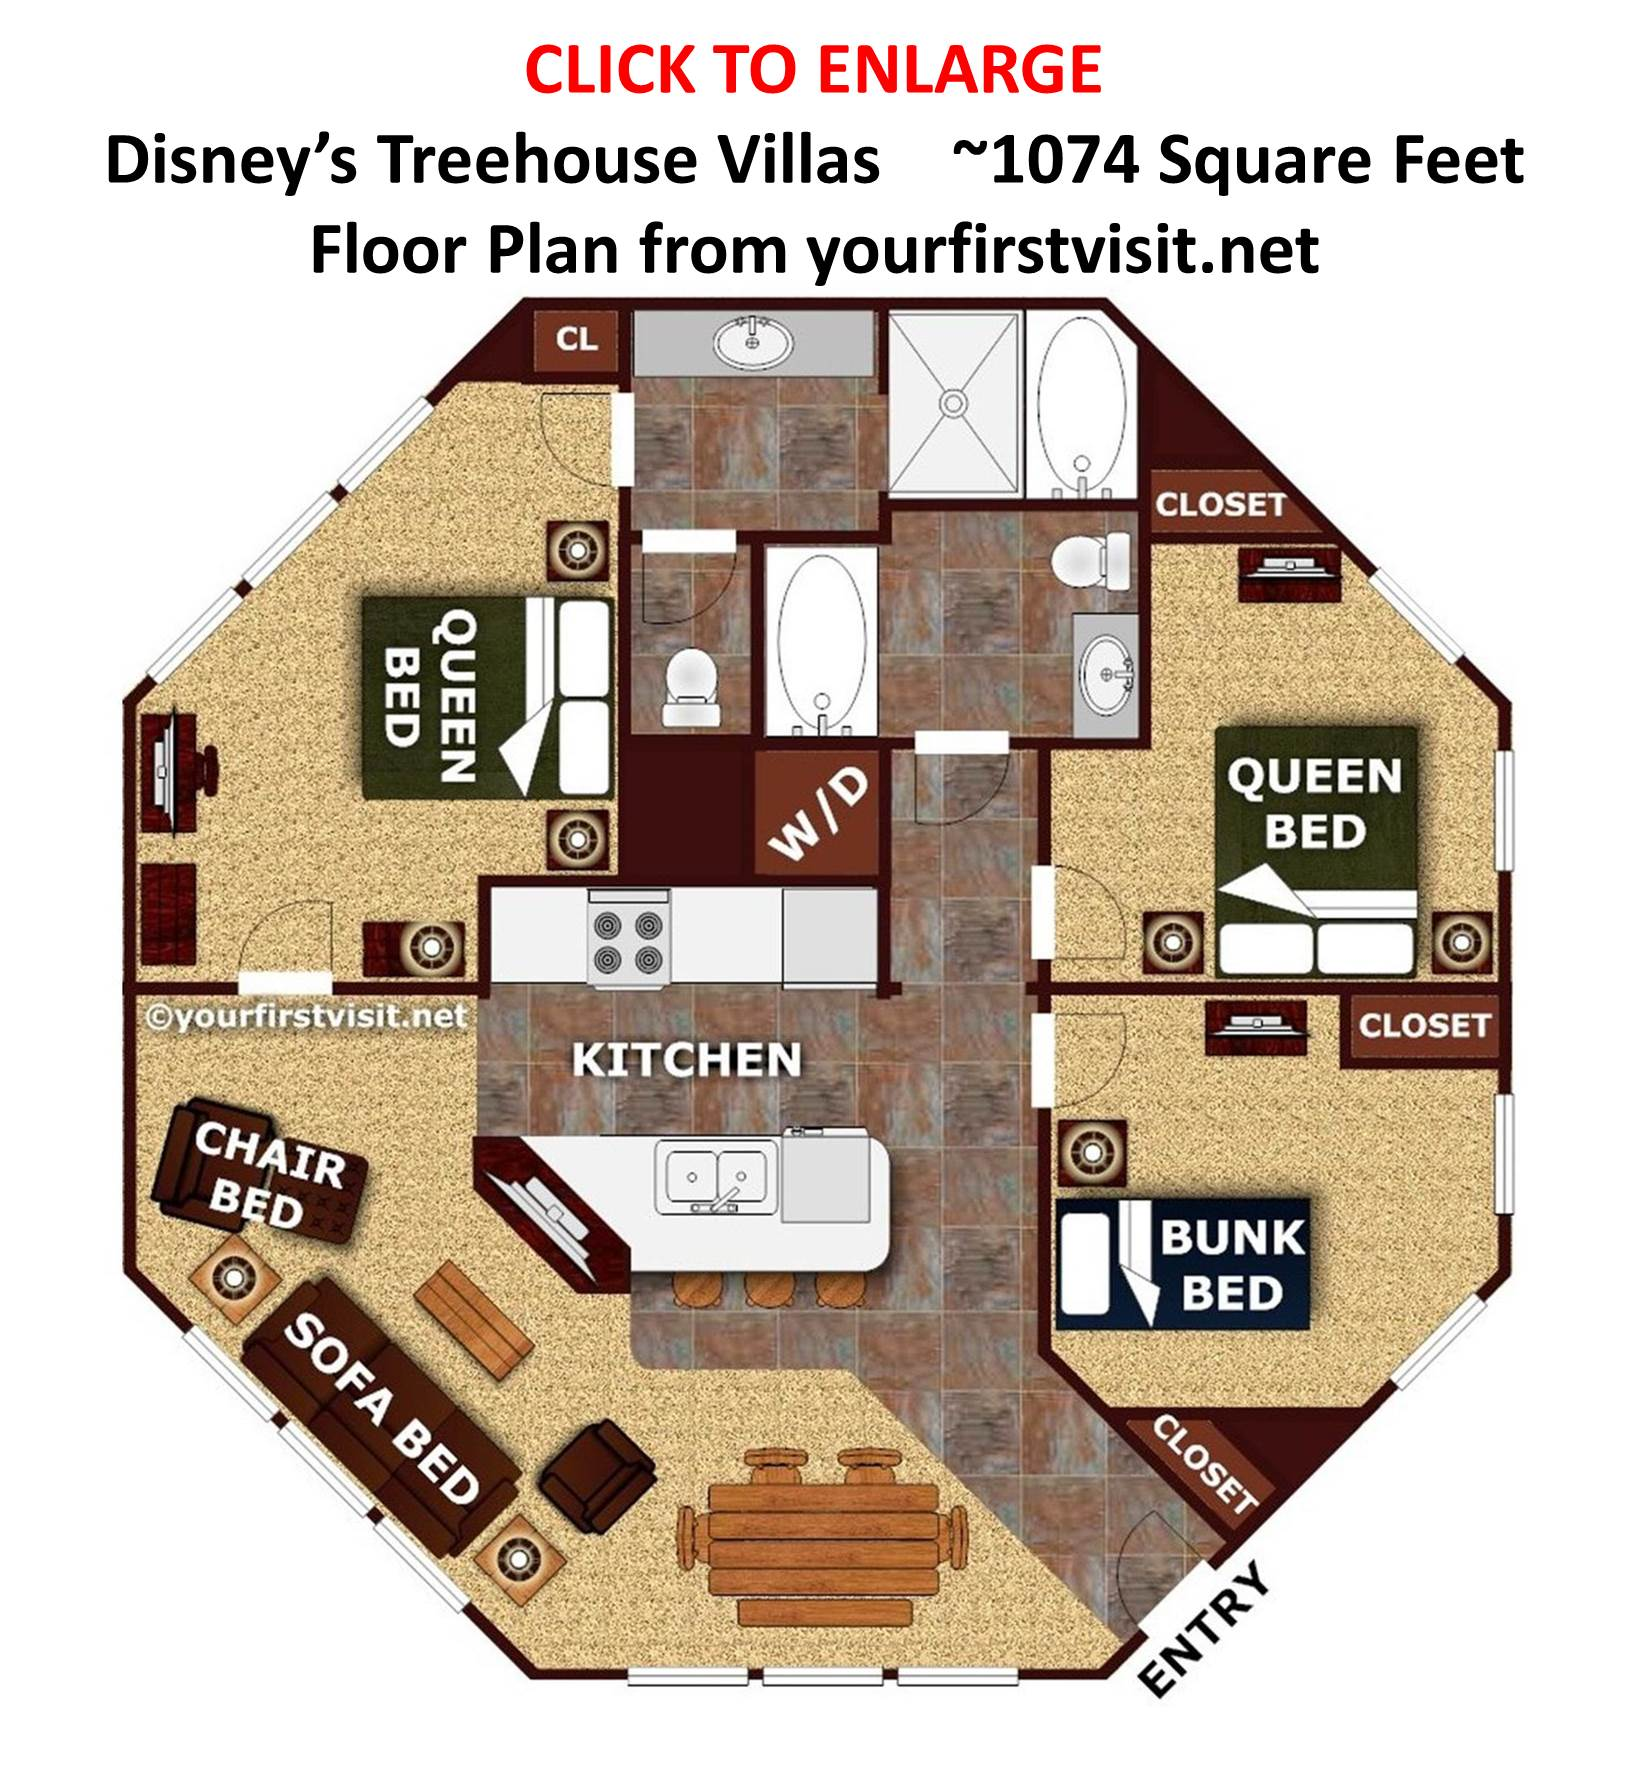 Floor Plan Disney's Treehouse Villas from yourfirstvisit.net